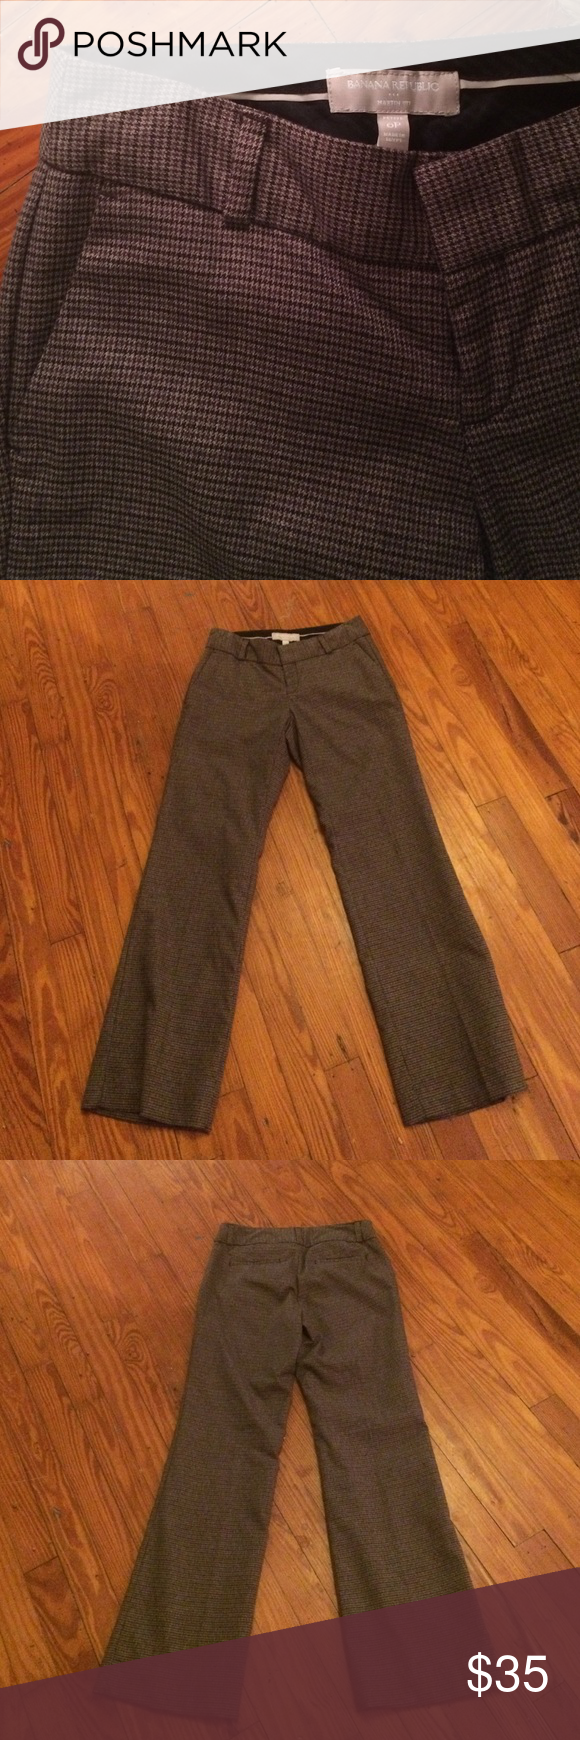 Banana Republic Dress Pants Brown Houndstooth dress pants. Worn once. Martin Fit. Banana Republic Pants Trousers